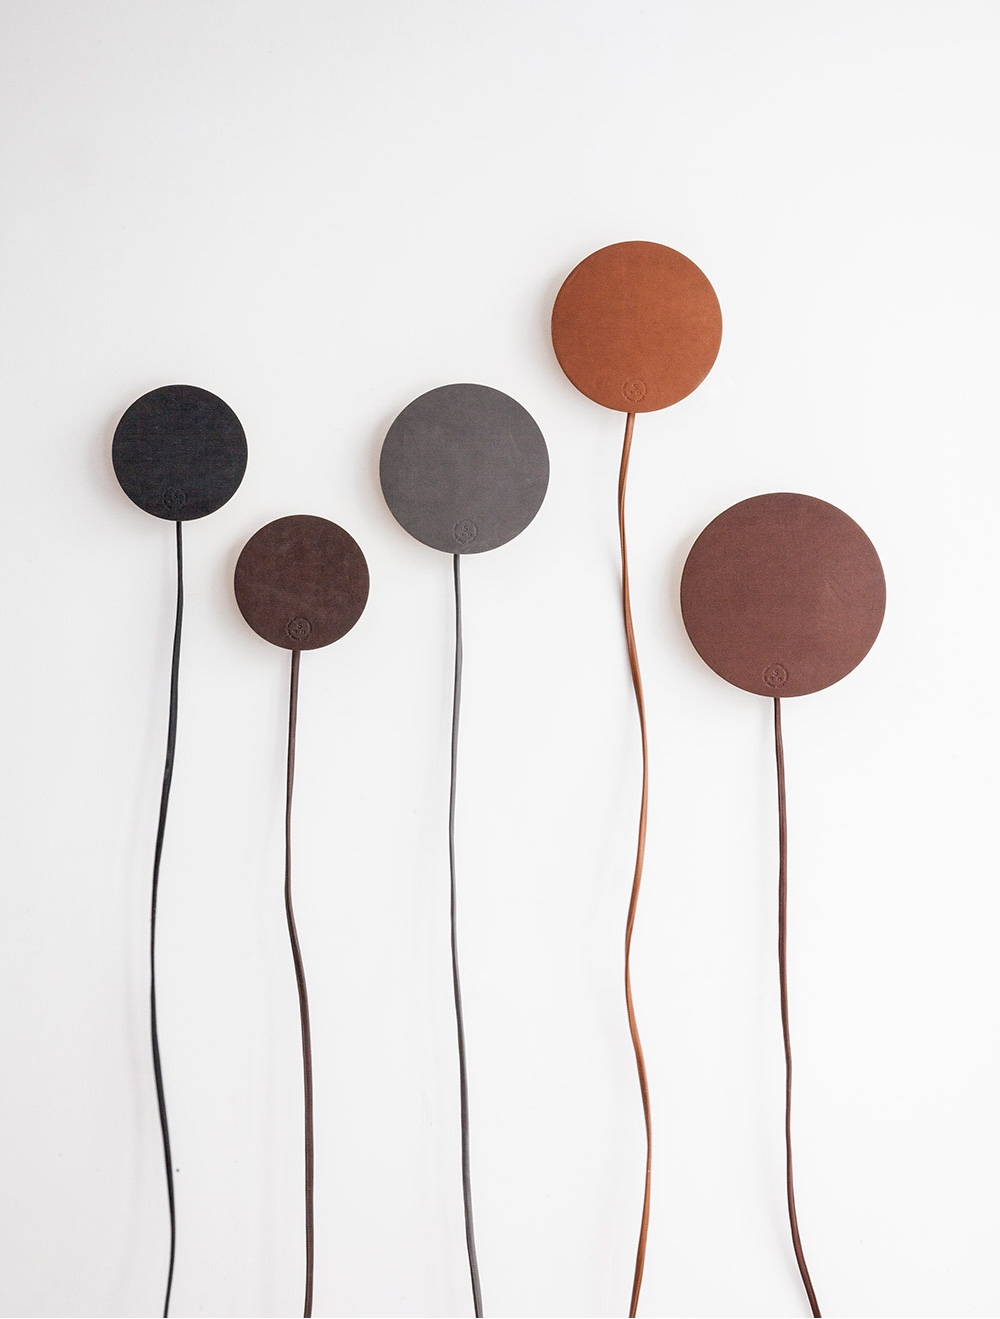 Lamps by Norm.Architects. Leather: Elegance, Dunes and Sense.